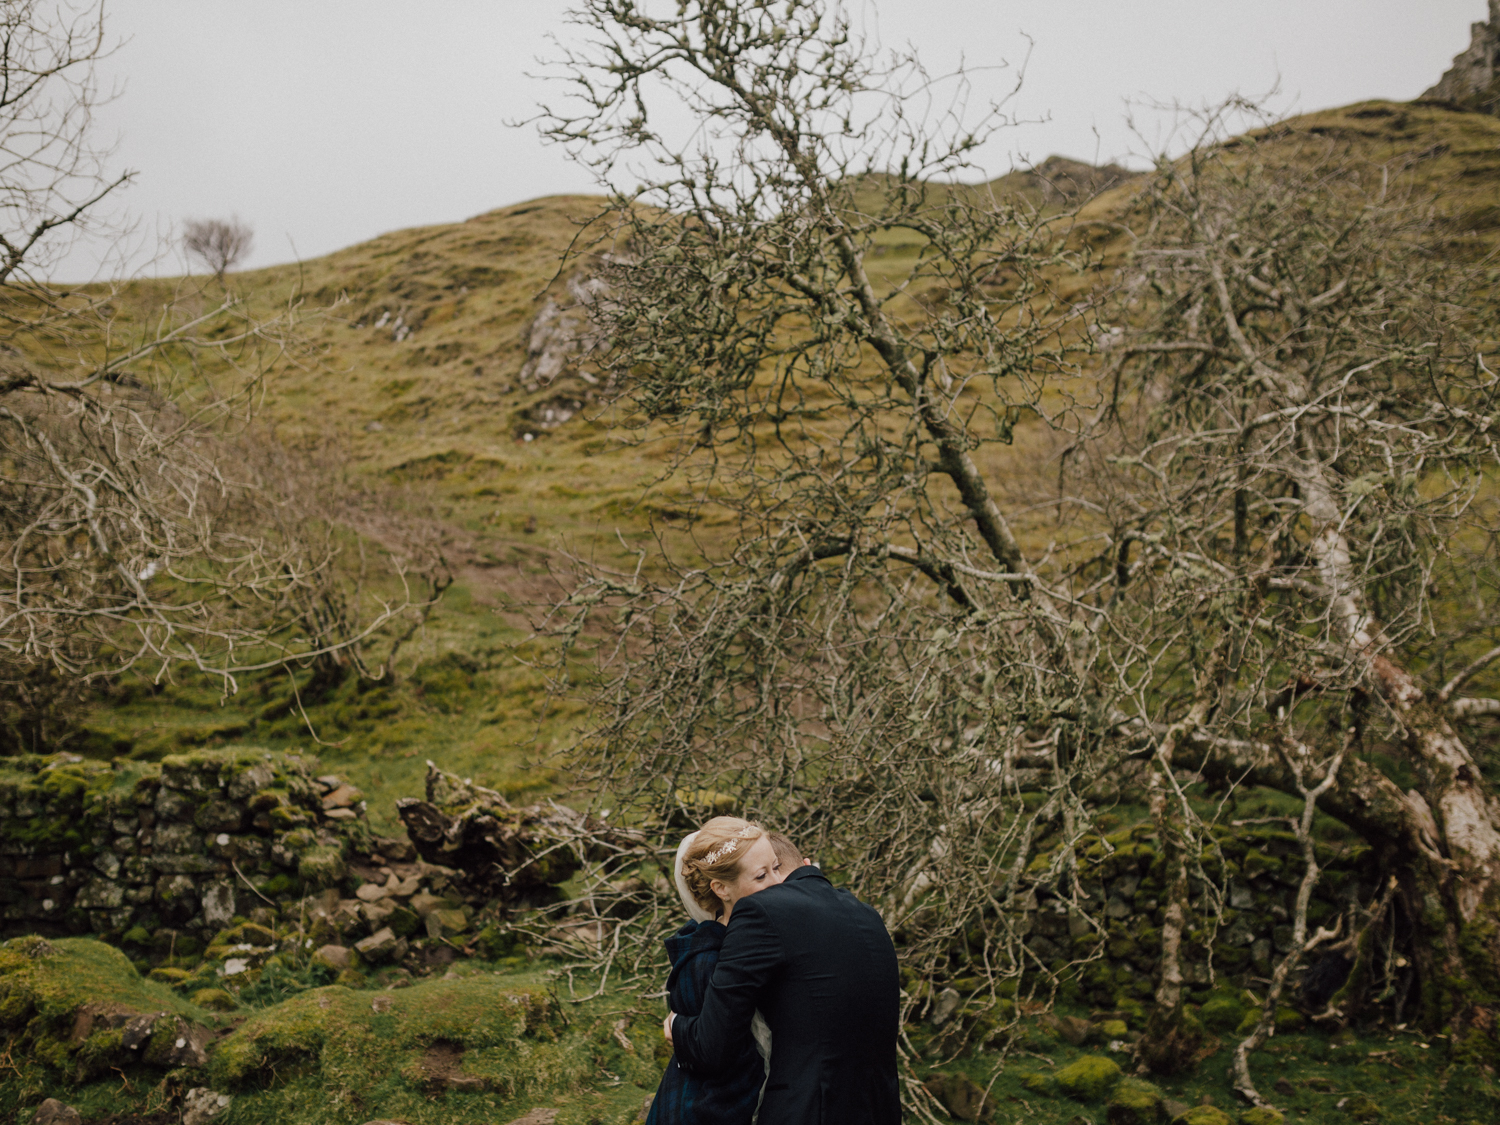 capyture-wedding-photographer-destination-elopement-isle-skye-scotland-294